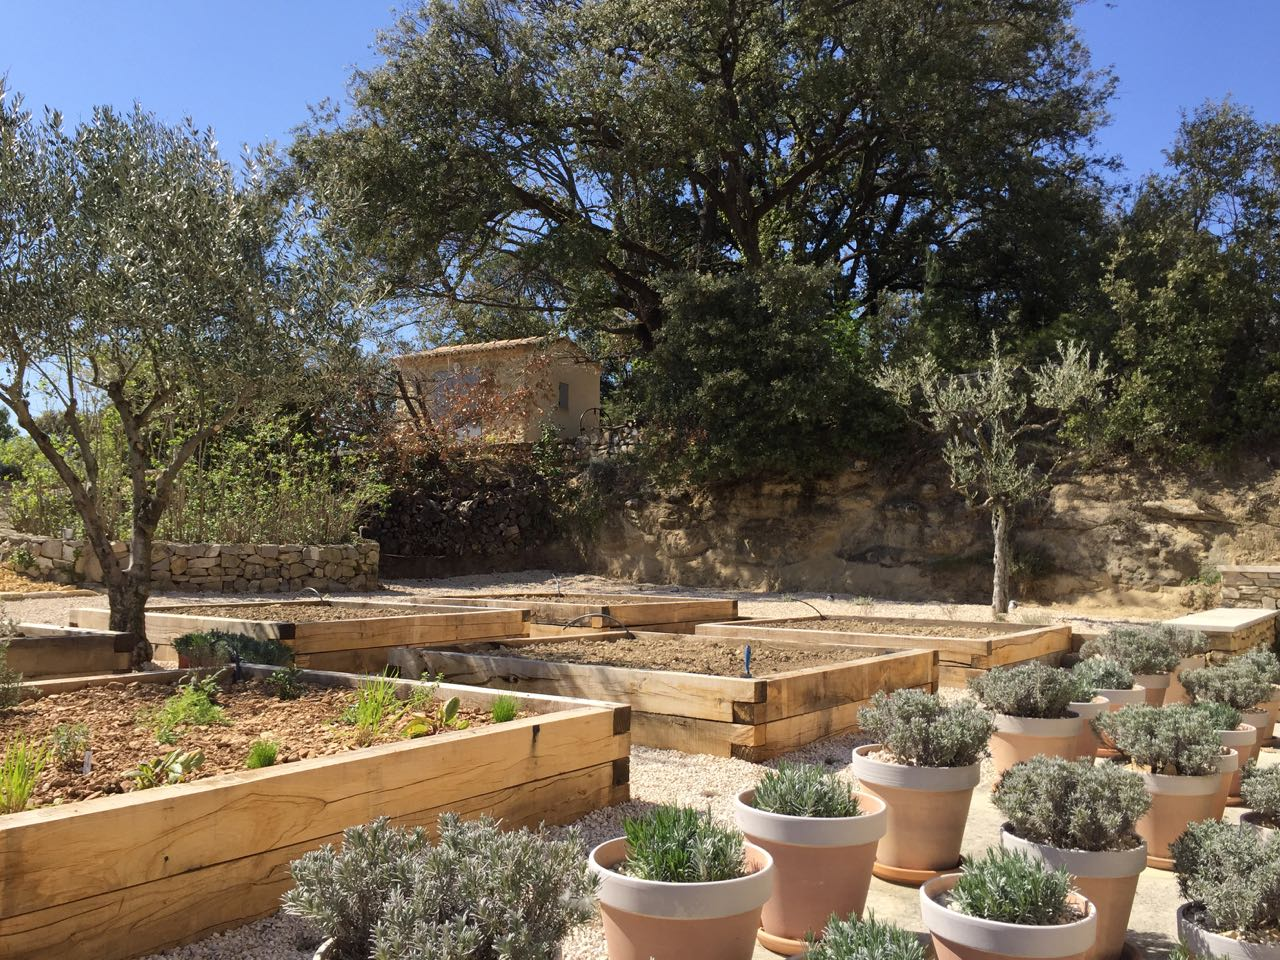 The garden project, kitchen garden